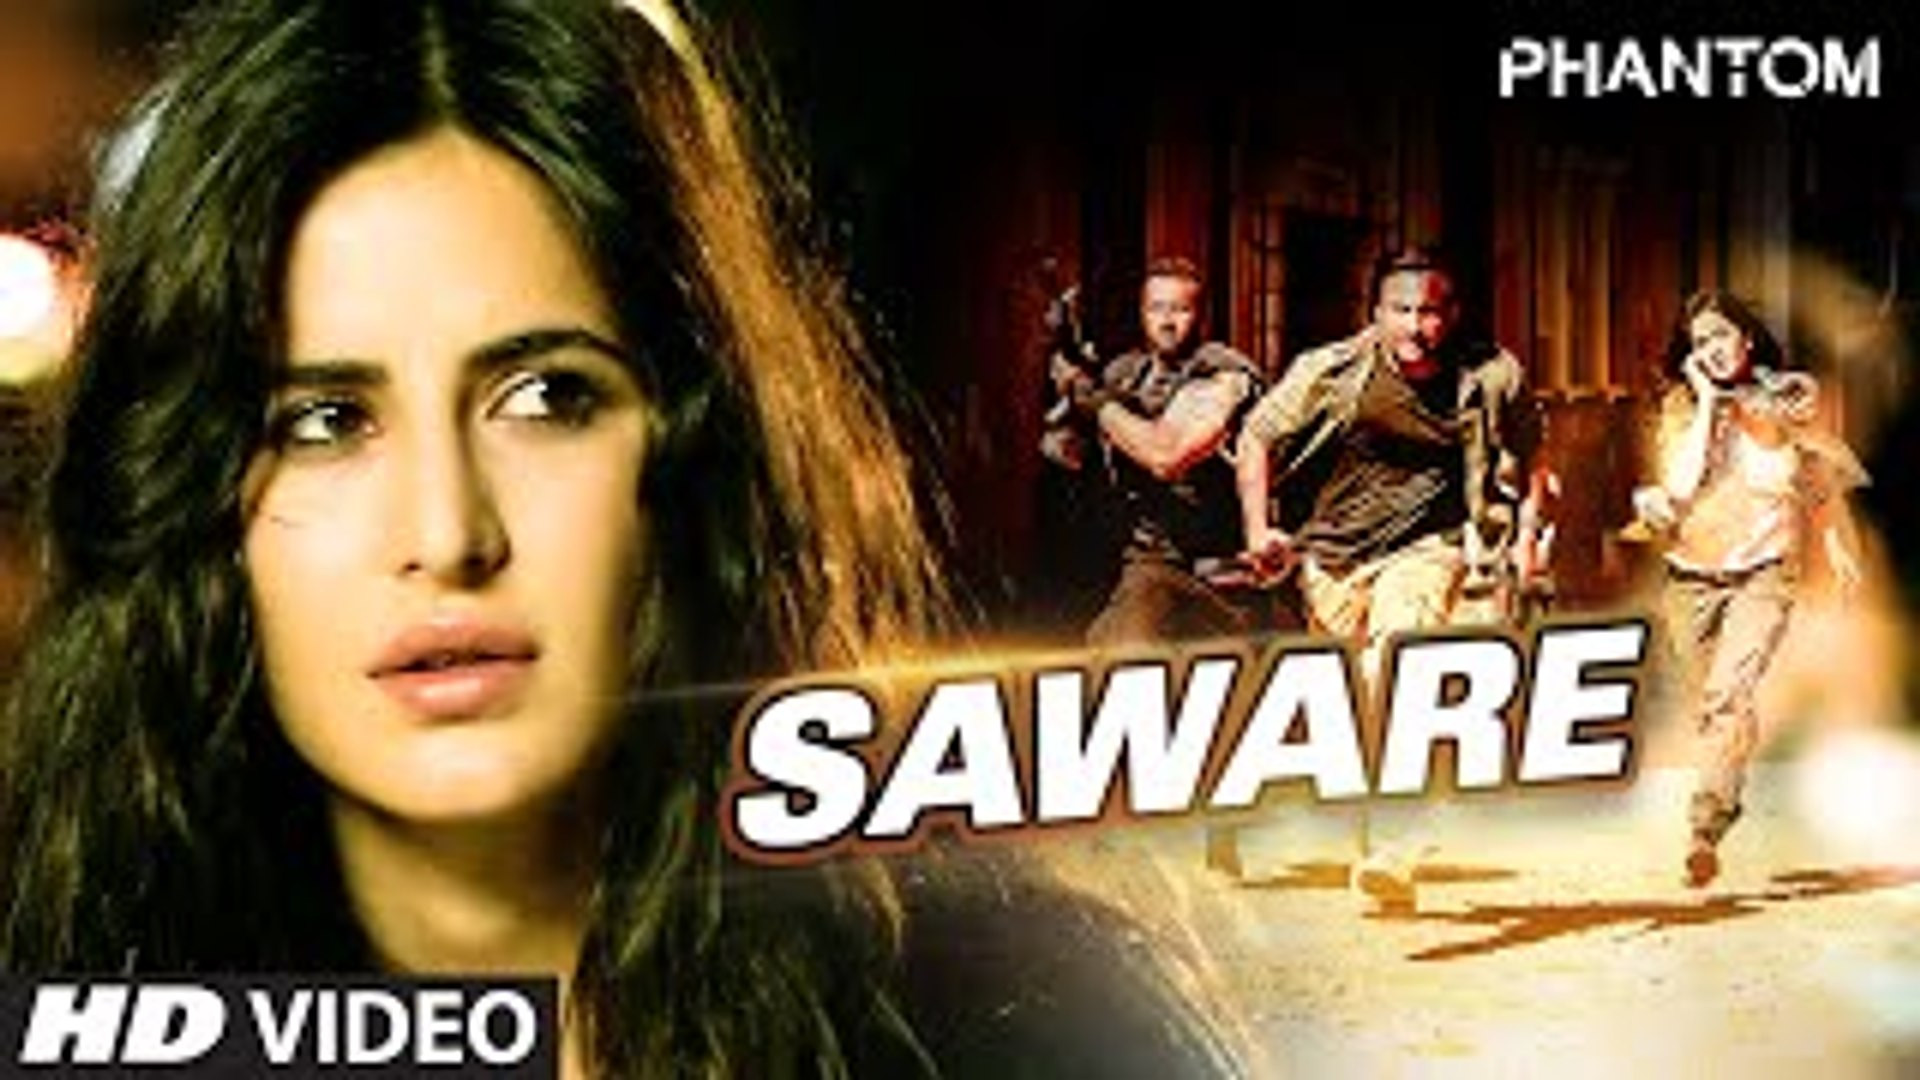 Saware (Phantom) HD Video Song - Arijit Singh